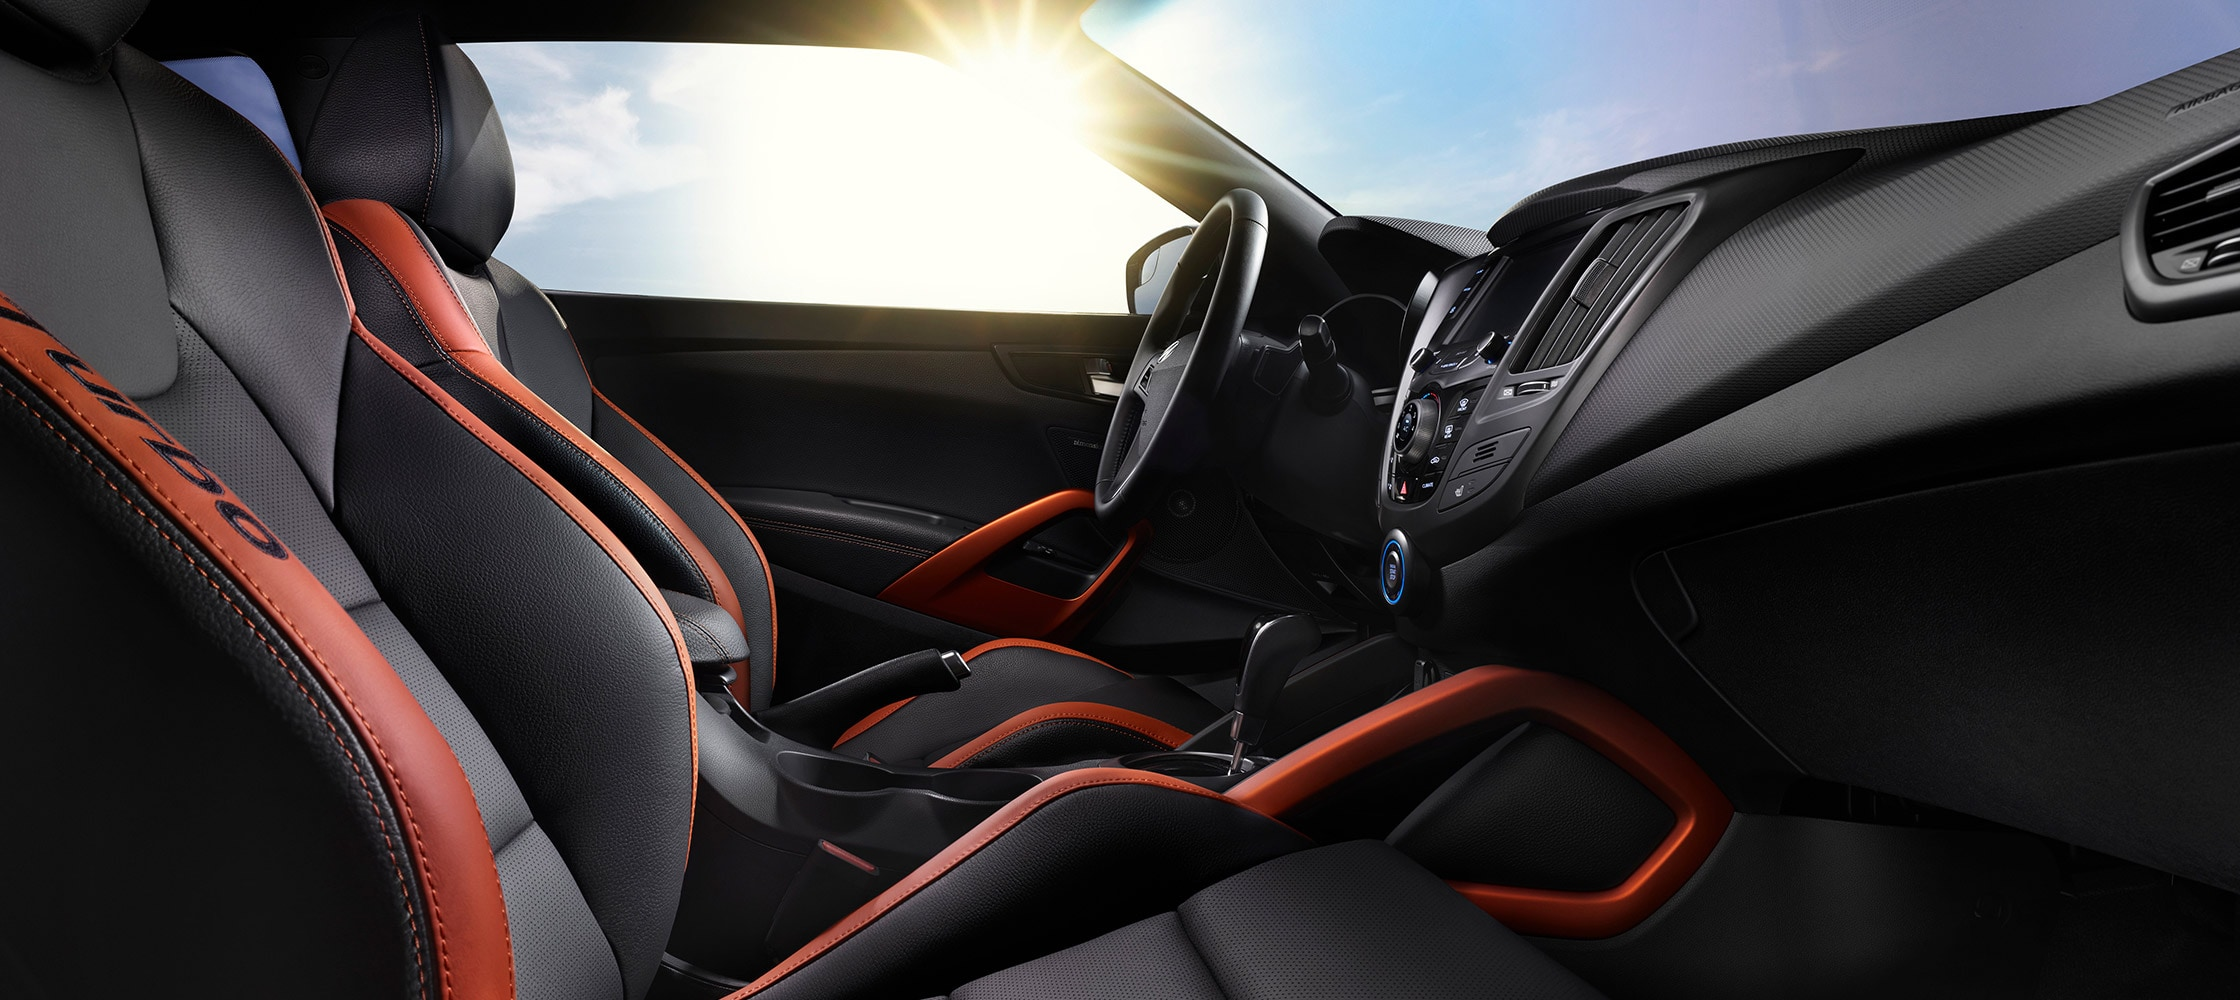 Interior image of Hyundai Veloster Turbo 2016 black leather interior with orange colour accents